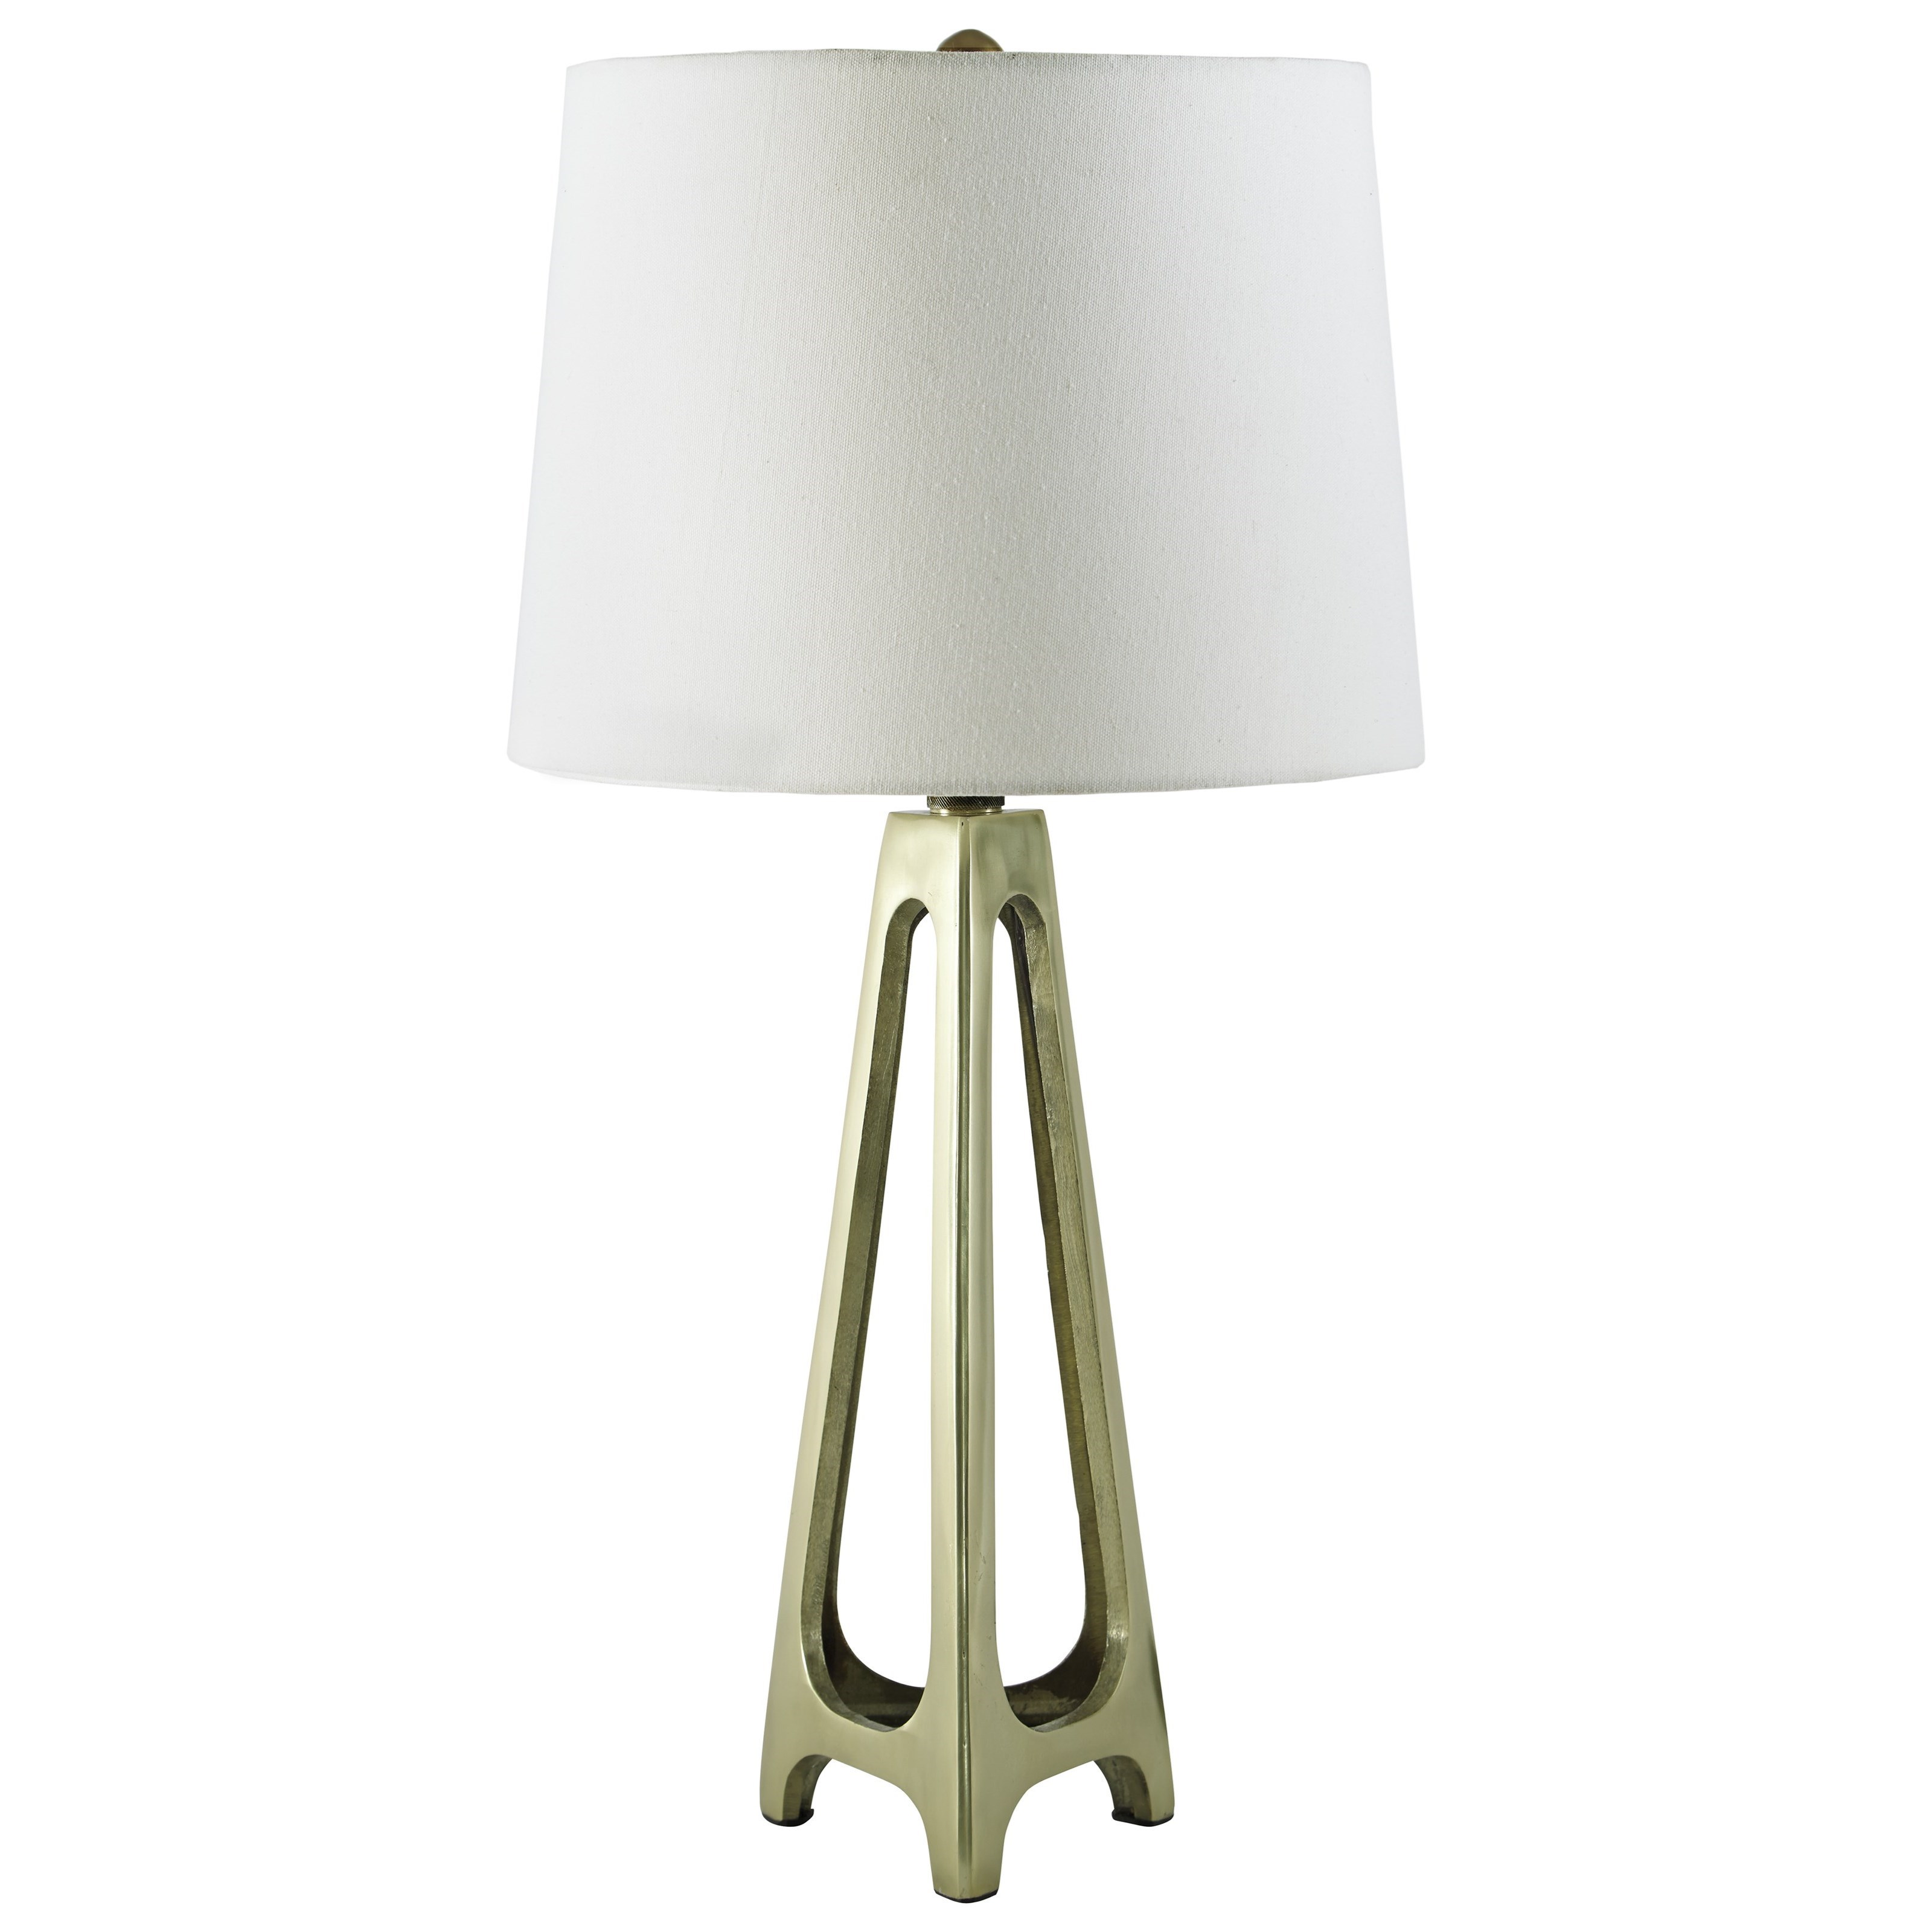 Signature Design by Ashley Lamps - Contemporary Set of 2 Howard Metal Table Lamps - Item Number: L207274